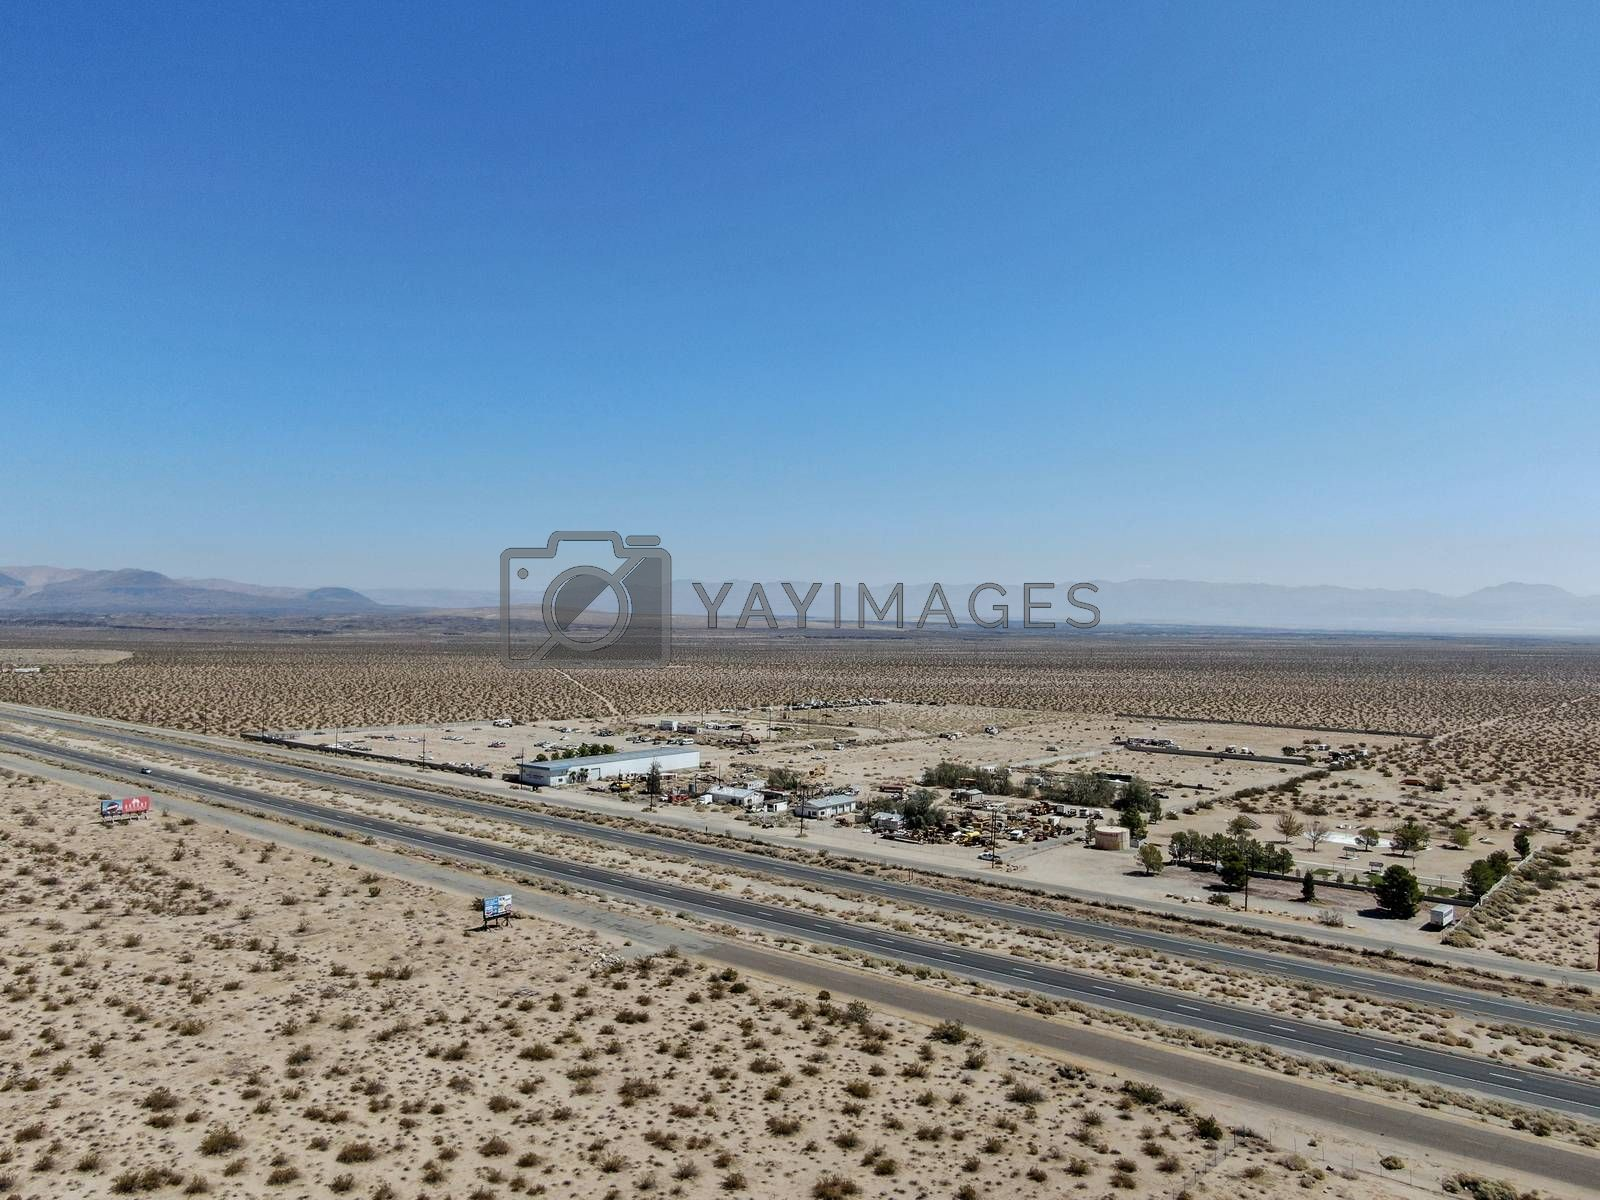 Royalty free image of Aerial view of road in the middle of the desert under blue sky in California's Mojave desert, near Ridgecrest.  by Bonandbon